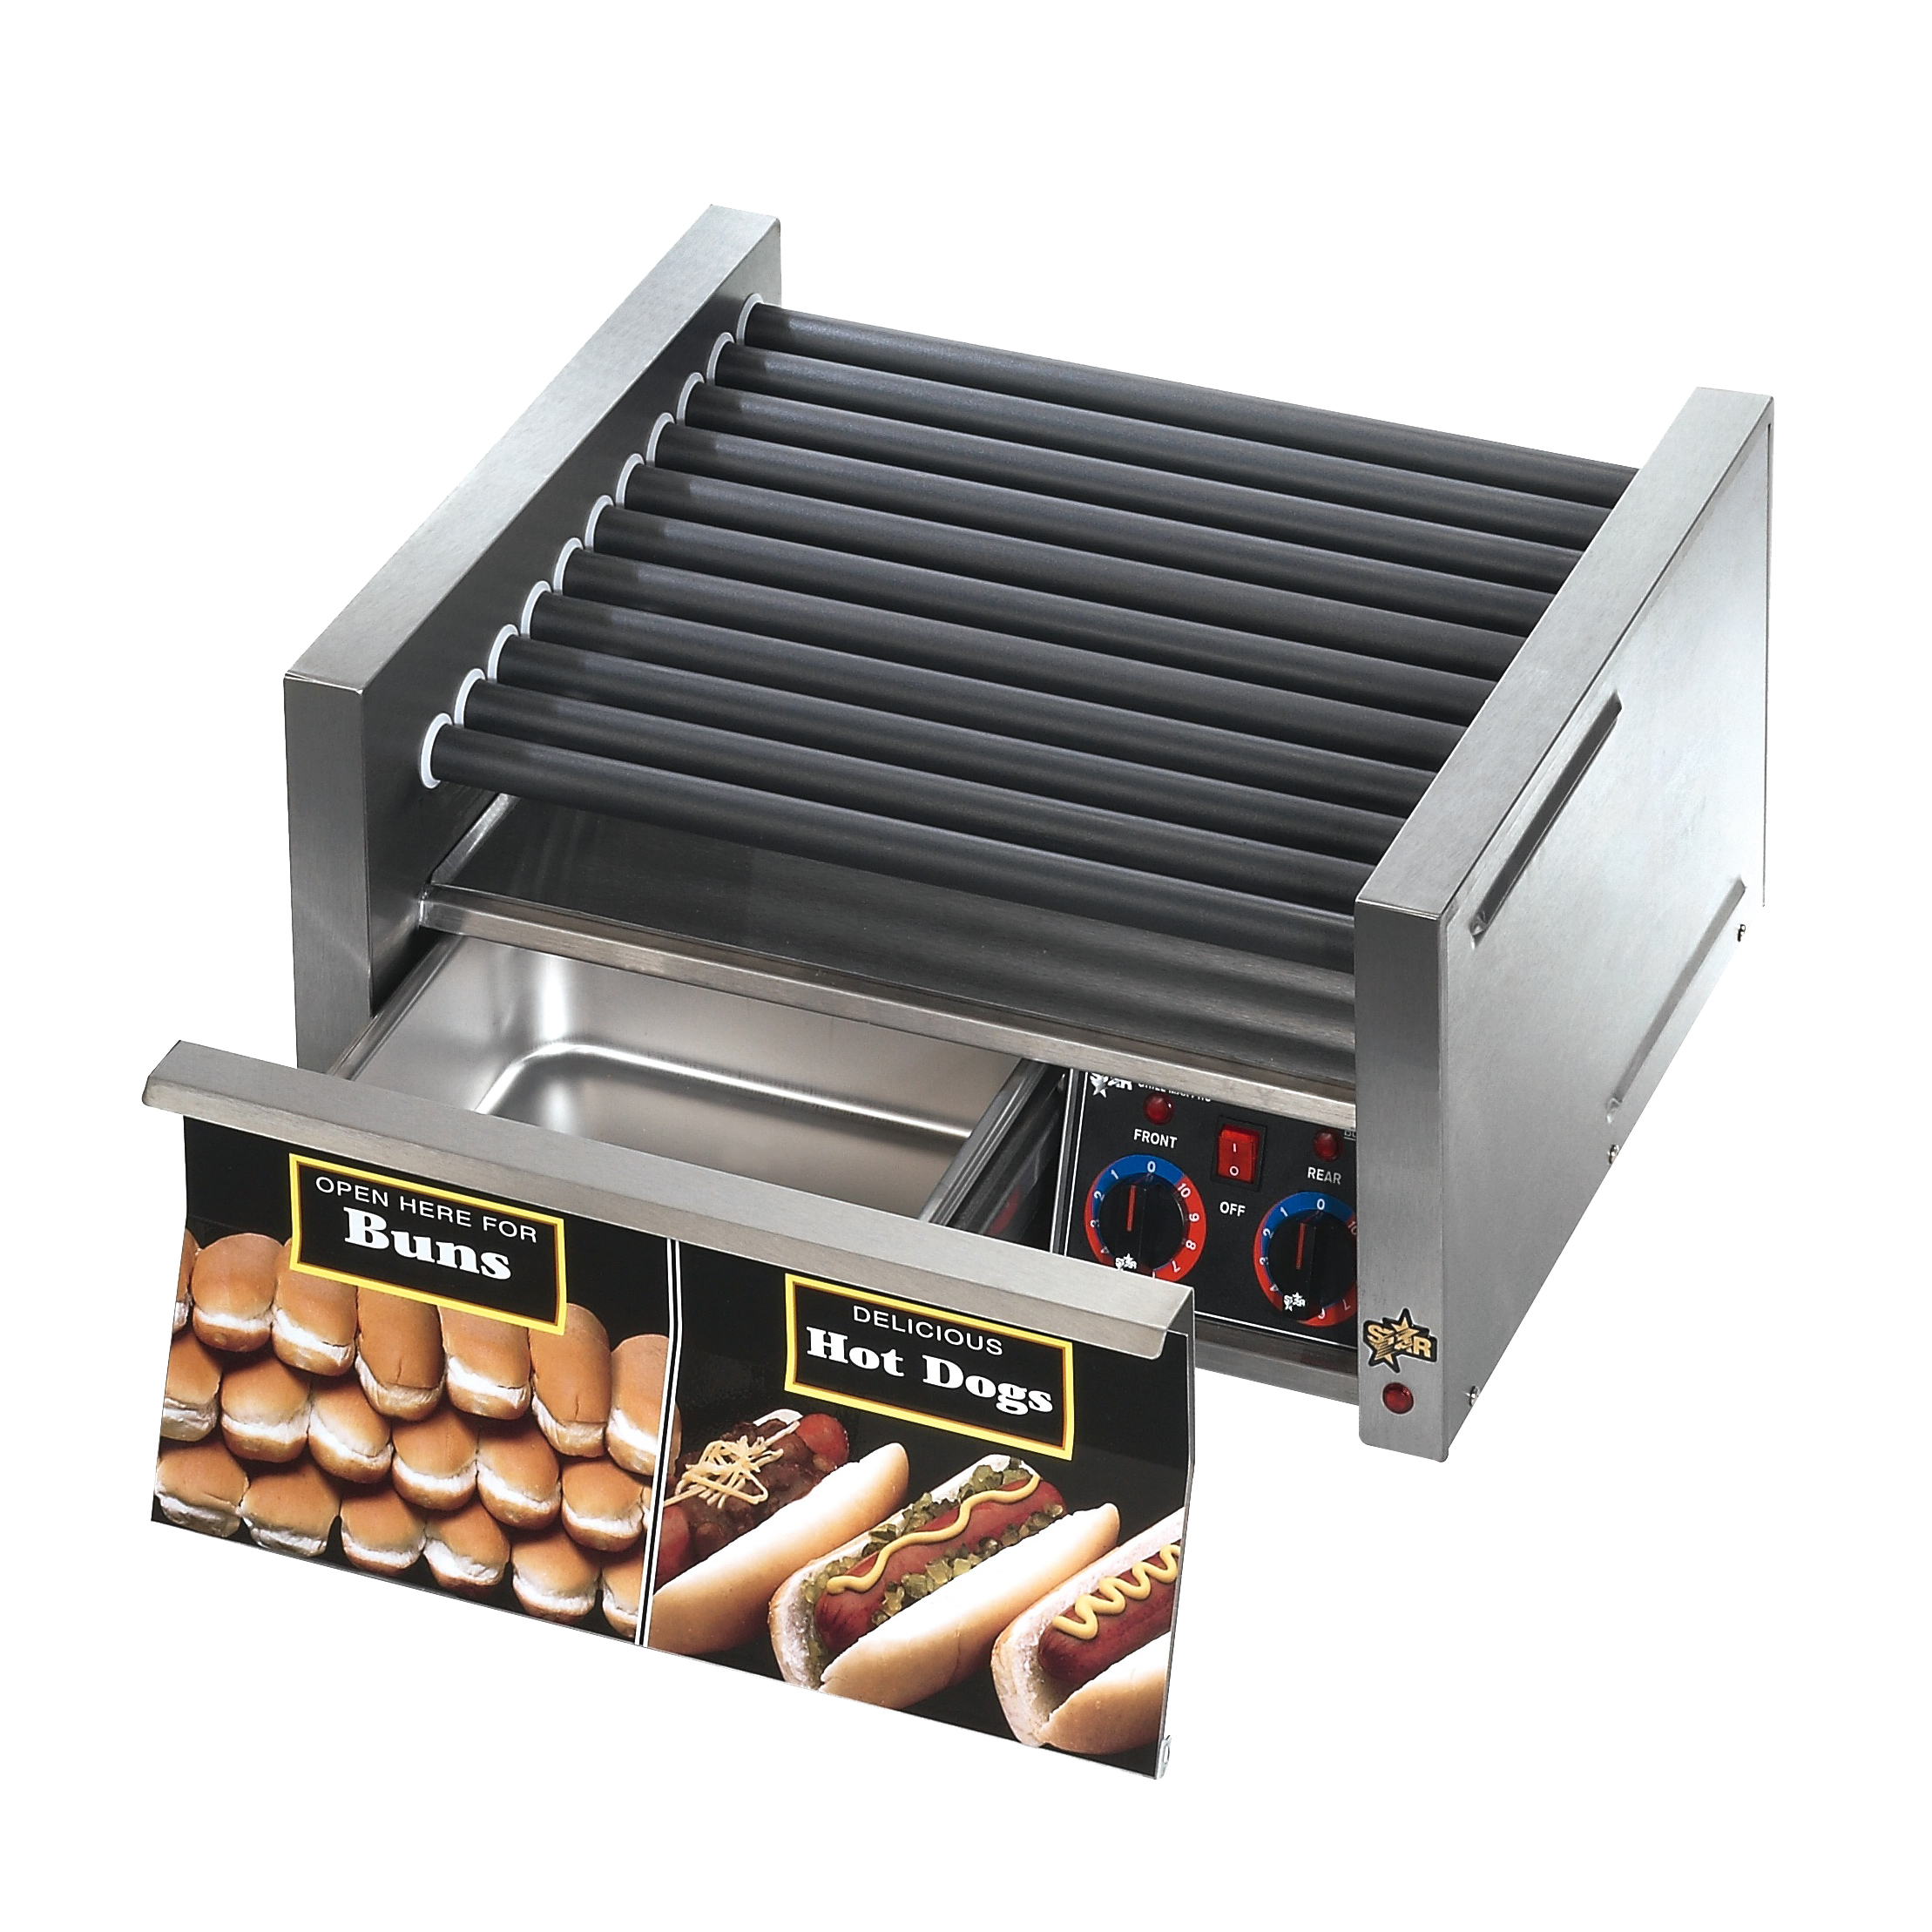 Star 30STBDE hot dog grill